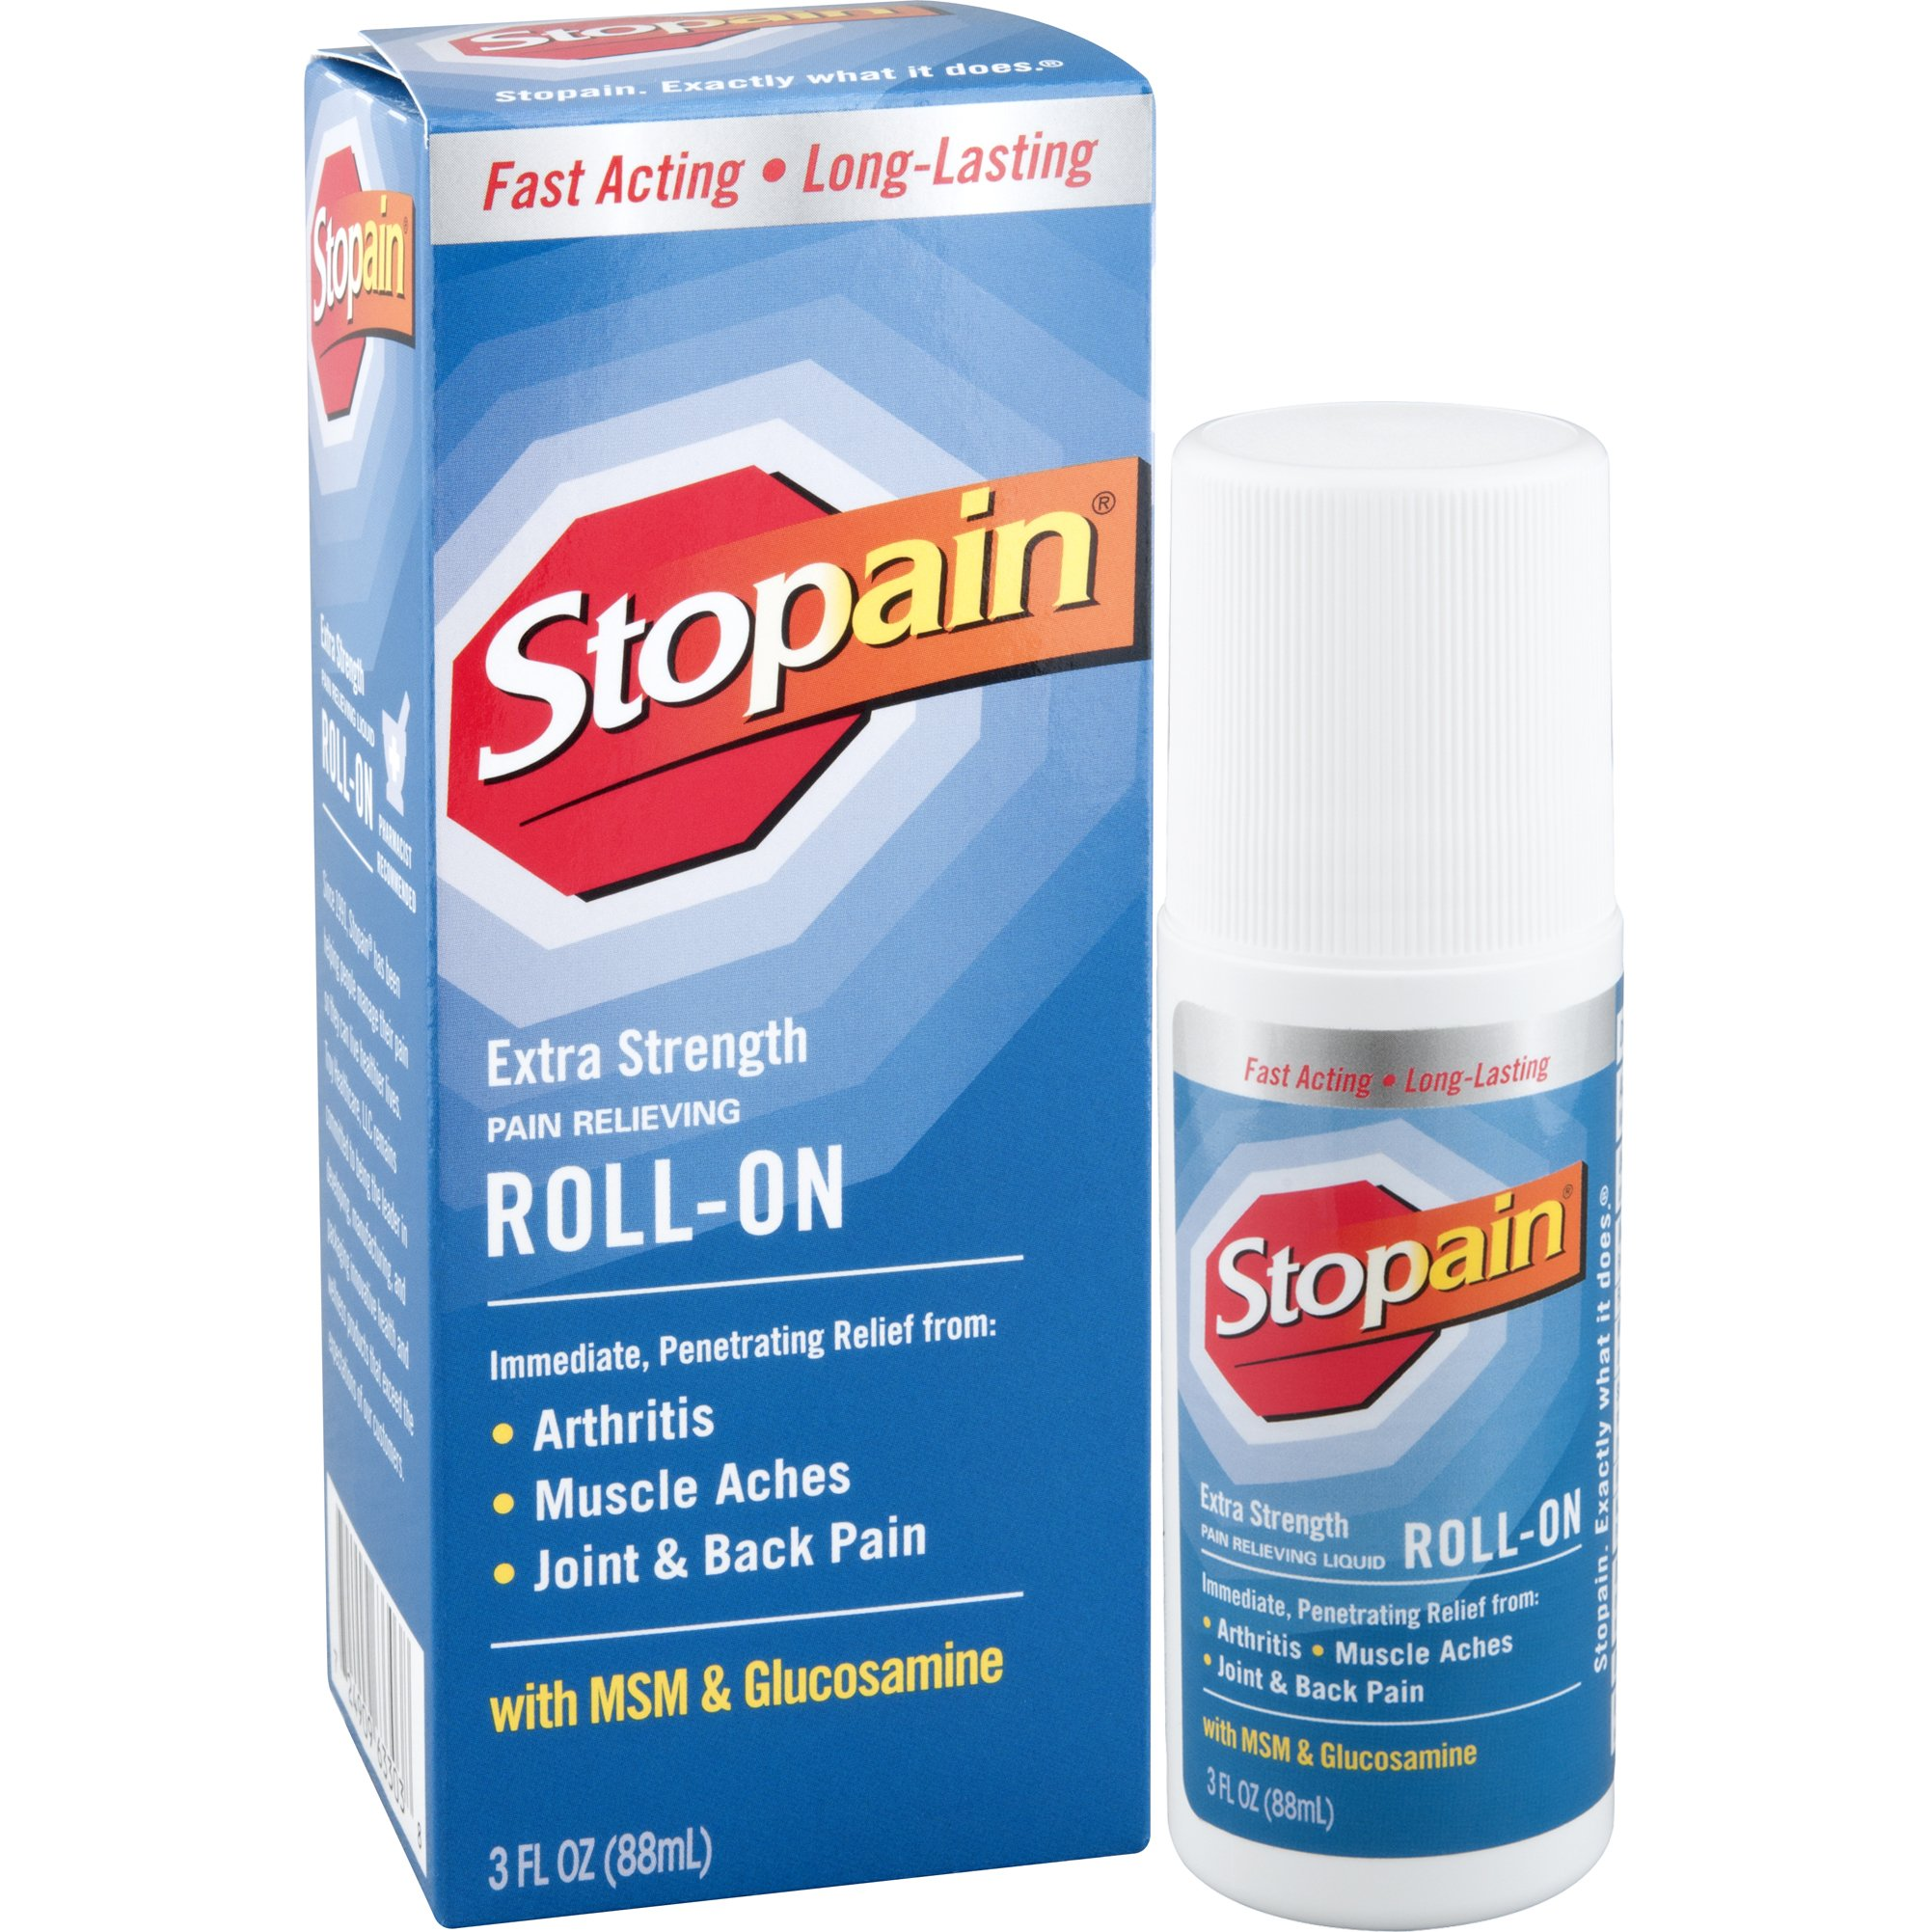 Stopain Extra Strength Pain Relief Roll-On, 3 Ounce, Mess Free and Easy, Temporarily Relieves Muscle and Joint Pain Due to Simple Backache, Arthritis, Strains, Bruises and Sprains